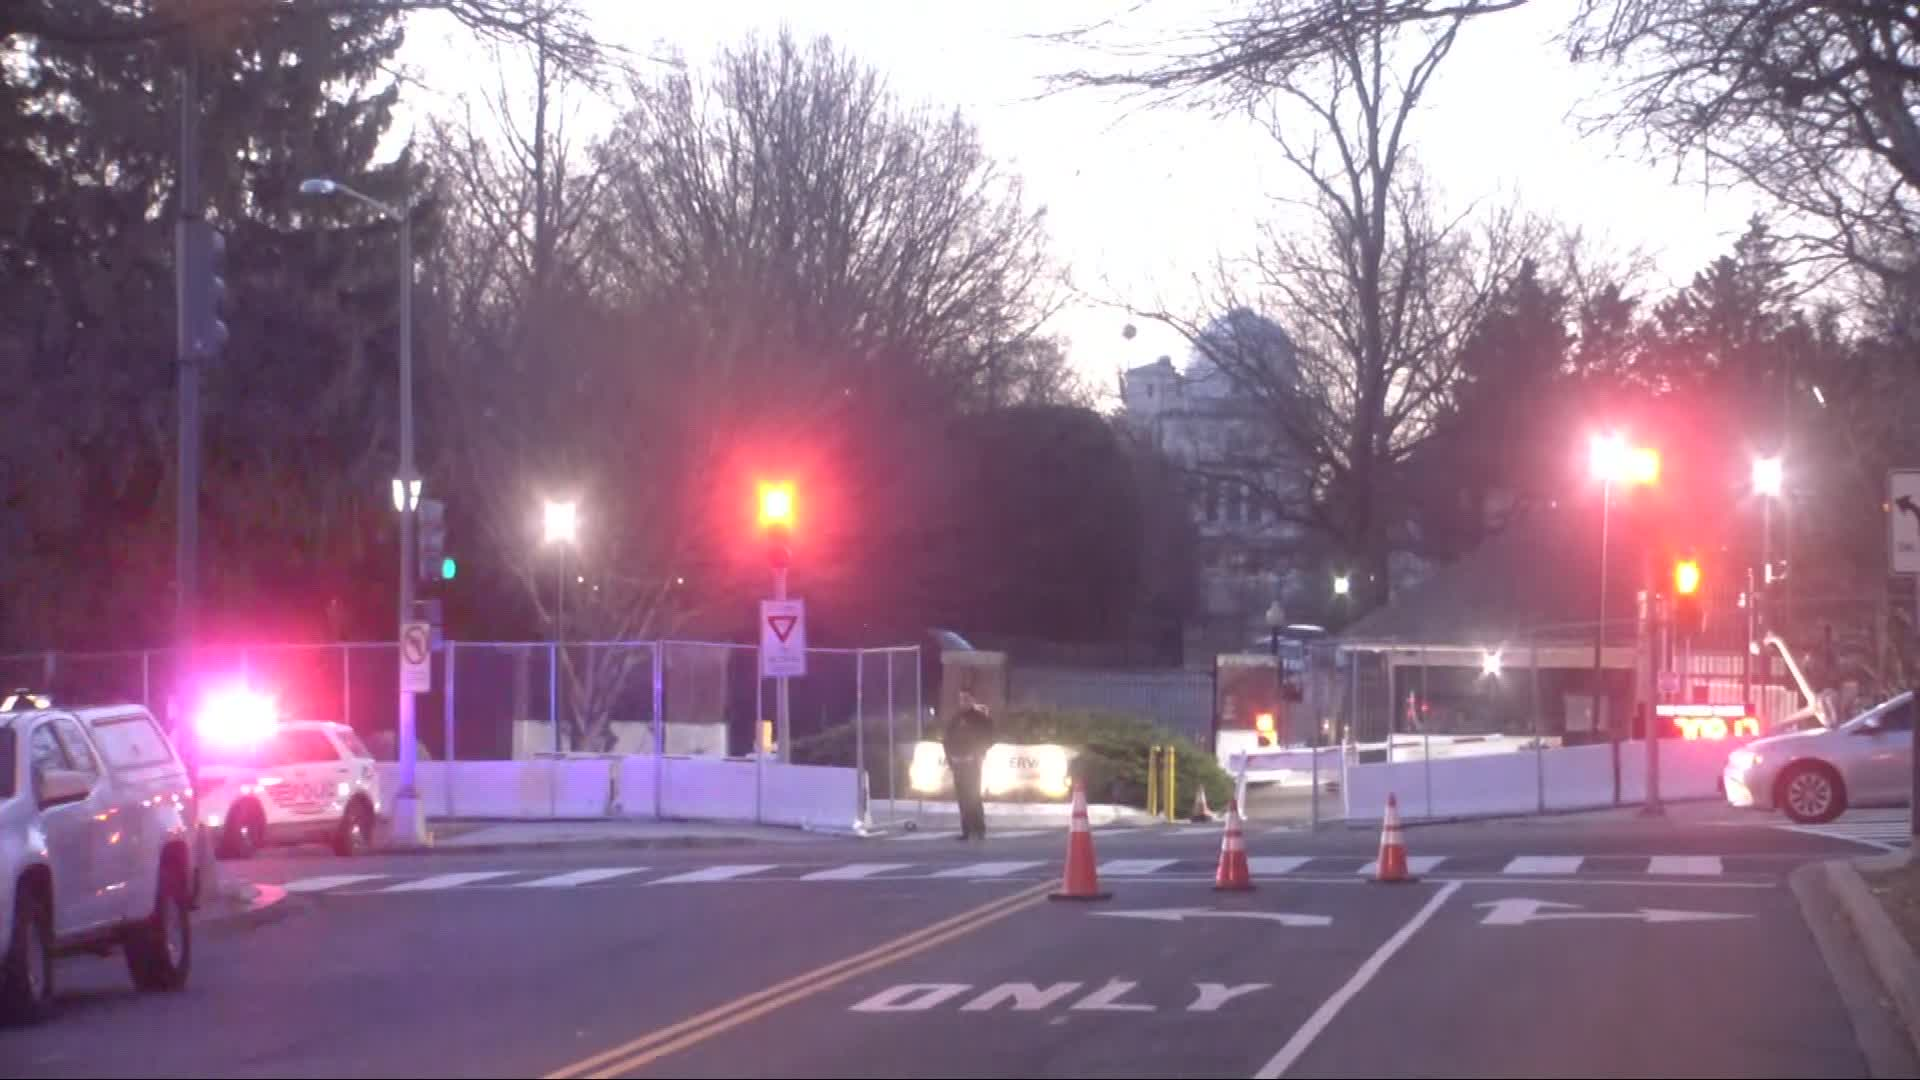 Security barriers are seen around the vice president's residence, the US Naval Observatory, in Washington, DC, on January 13, in this screengrab taken from CNN footage.